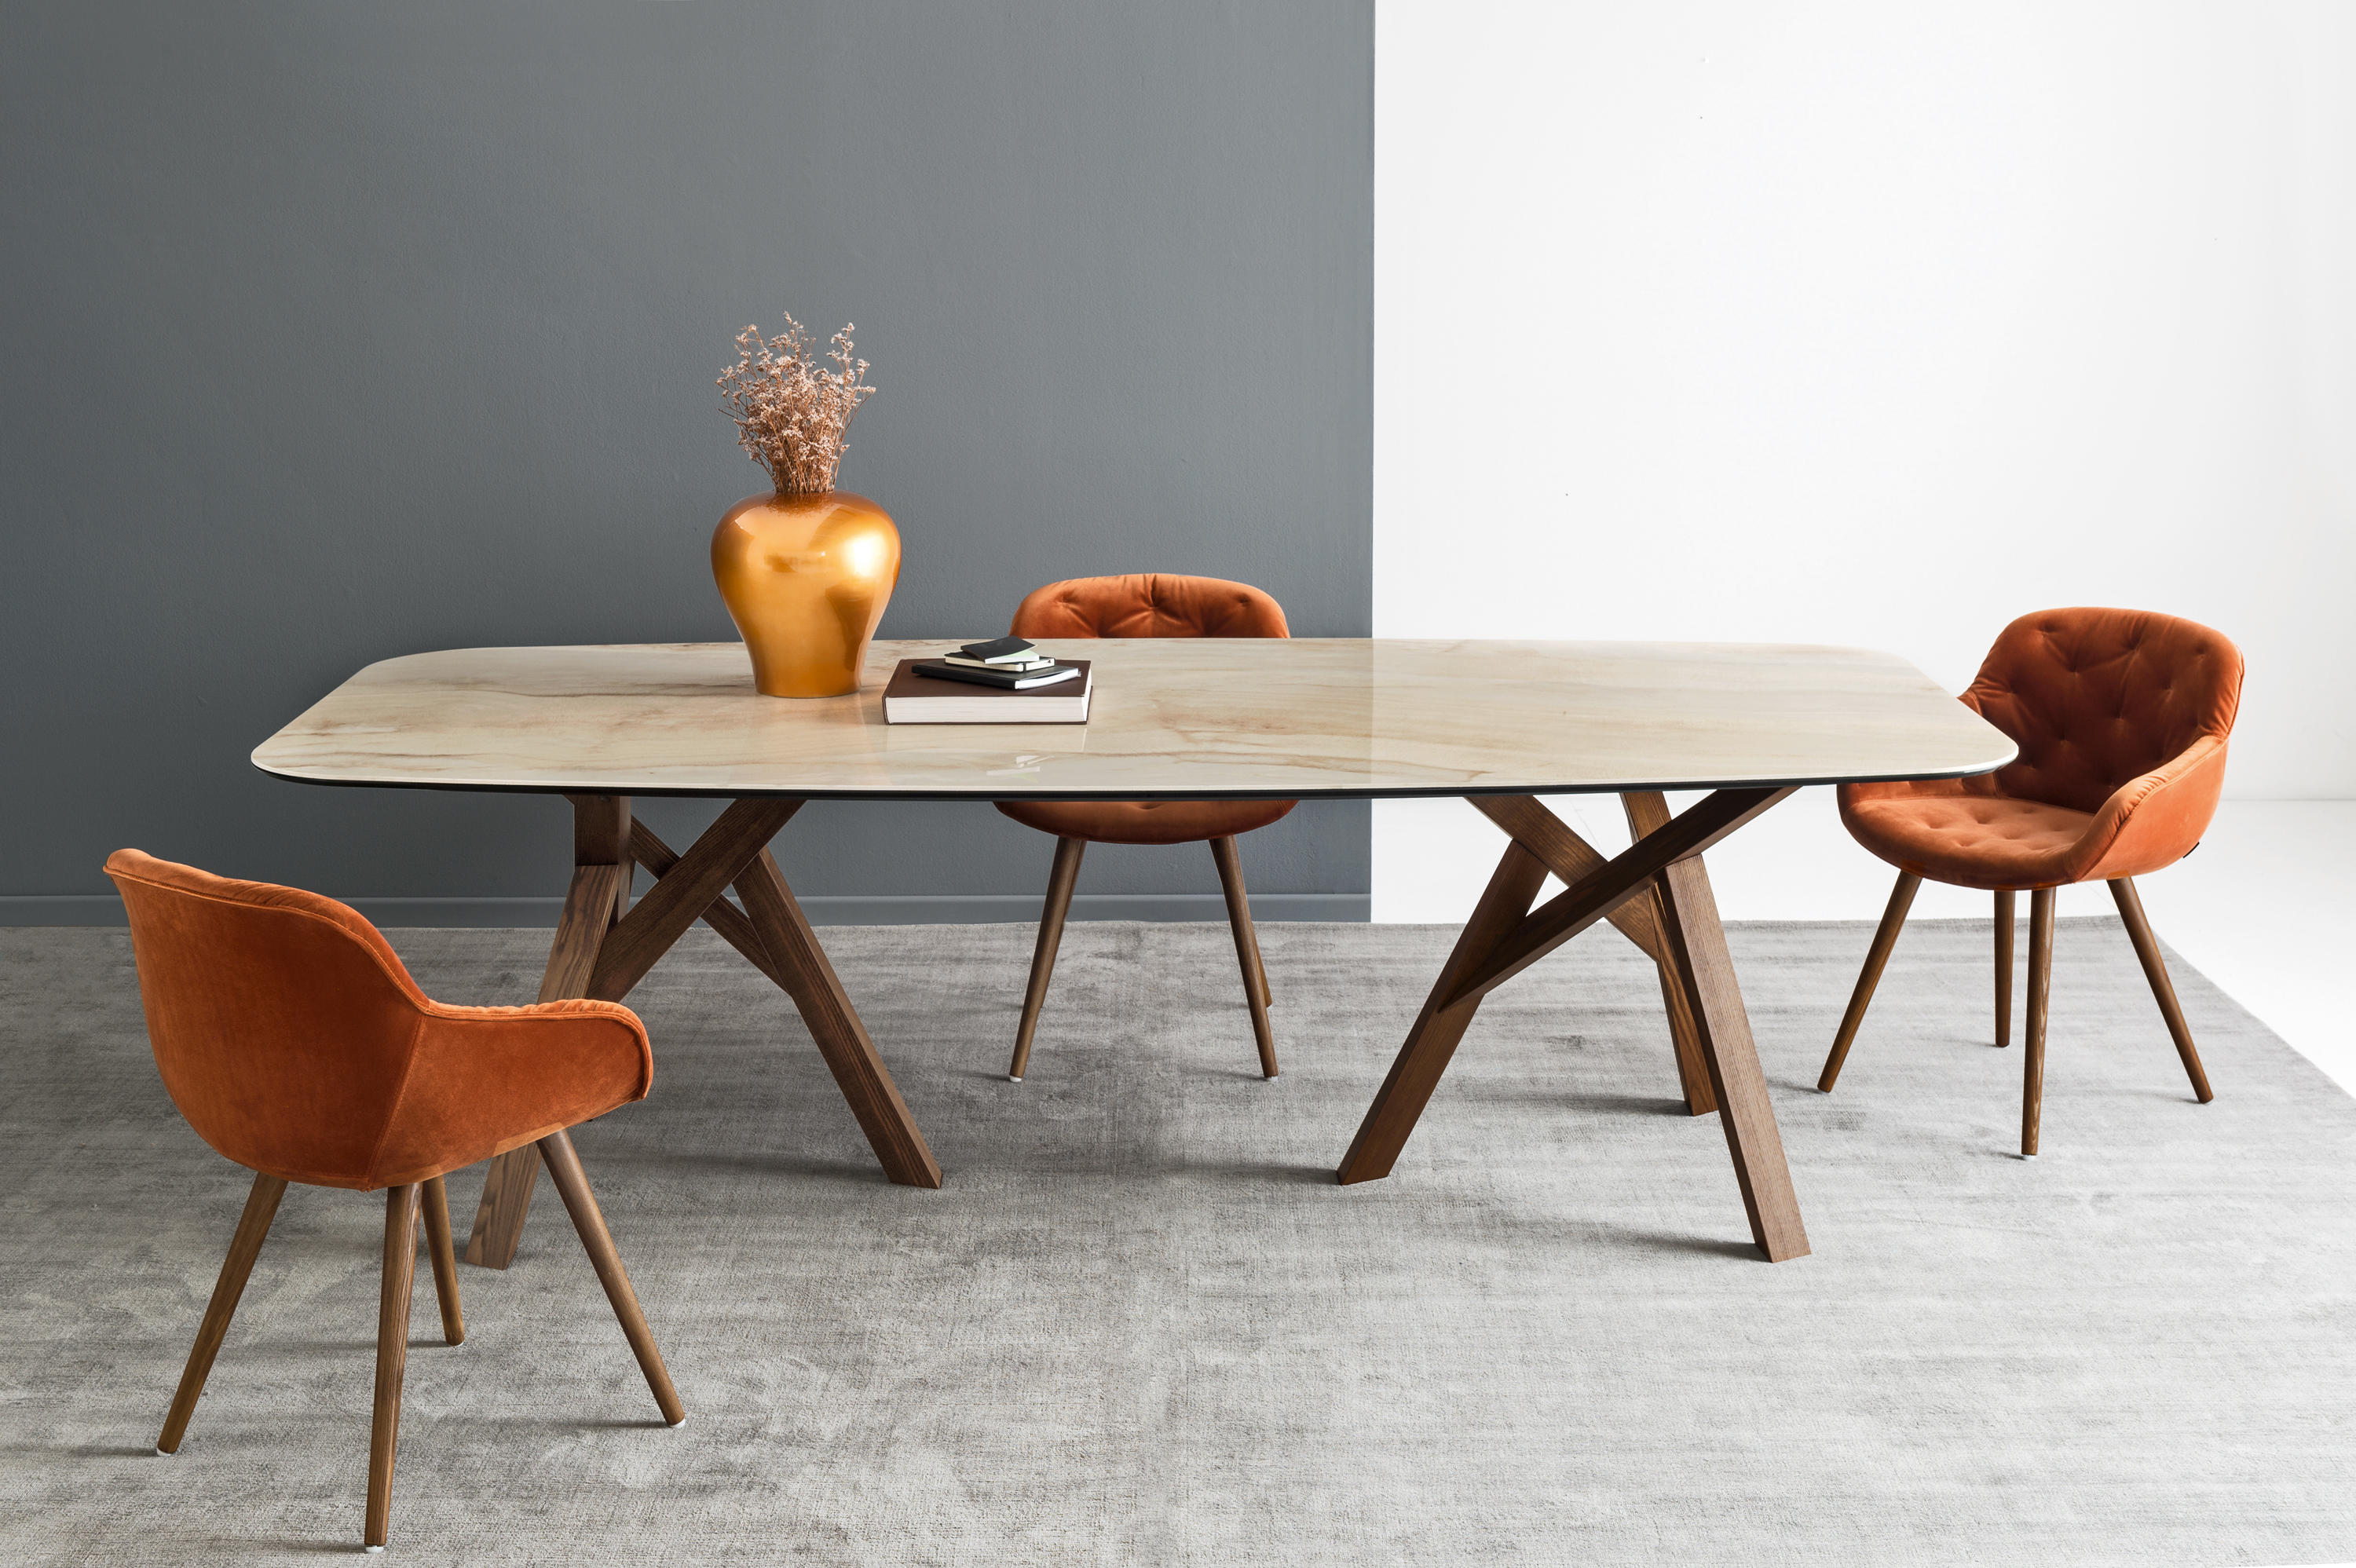 IGLOO - Chairs from Calligaris | Architonic